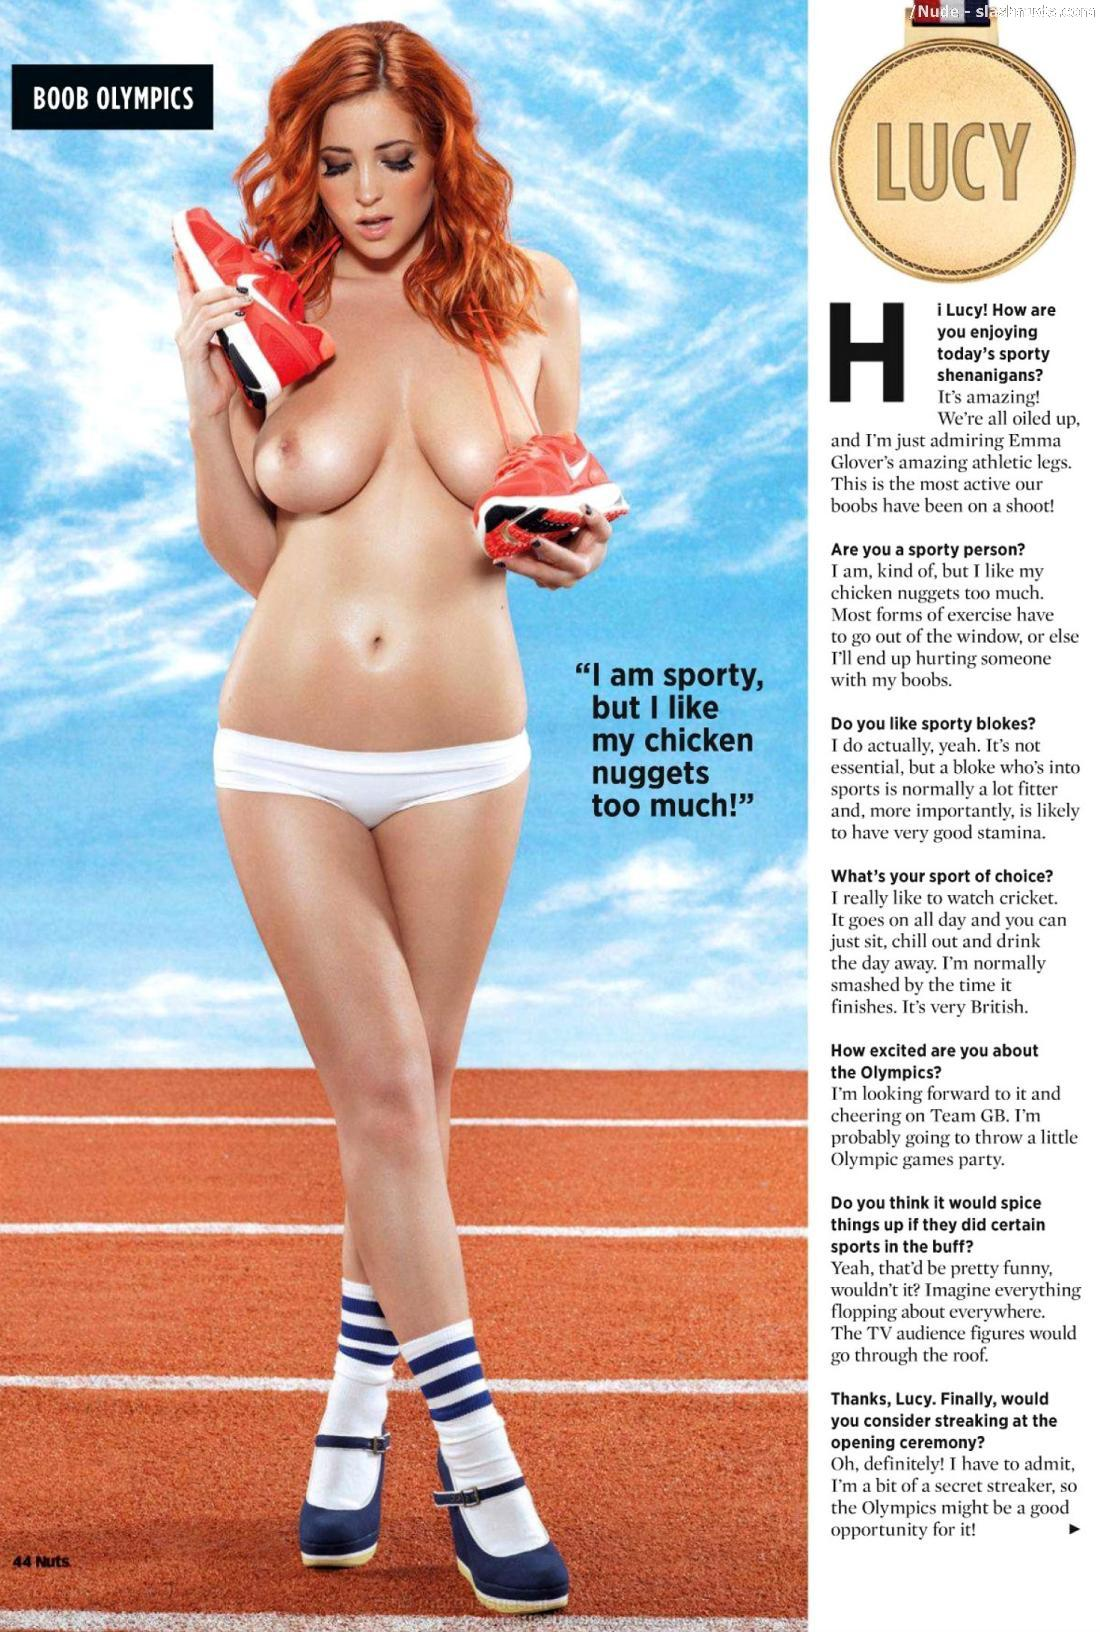 Holly Peers Lucy Collett Emma Glover Leah Francis Topless Olympics 4